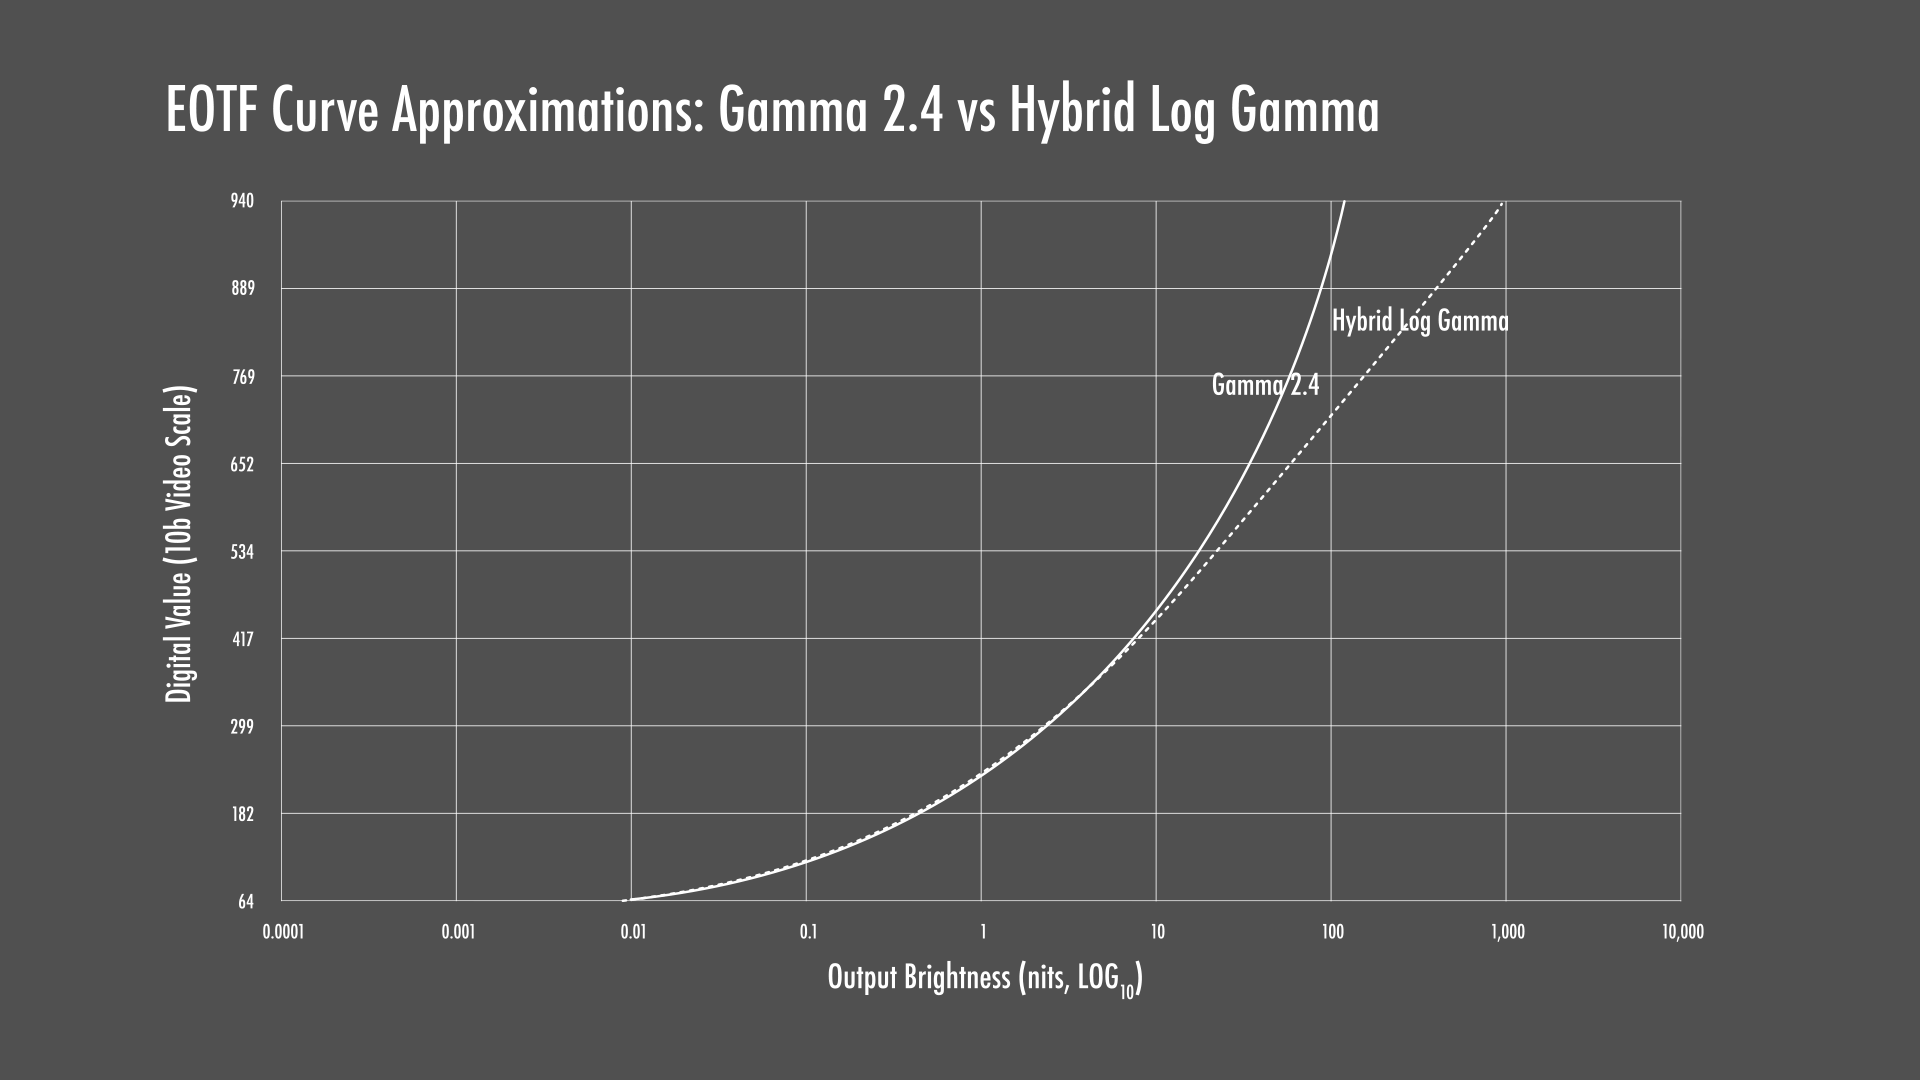 Hybrid Log Gamma (HLG) Electro-Optical Transfer Function (EOTF) with Gamma 2.4 Reference